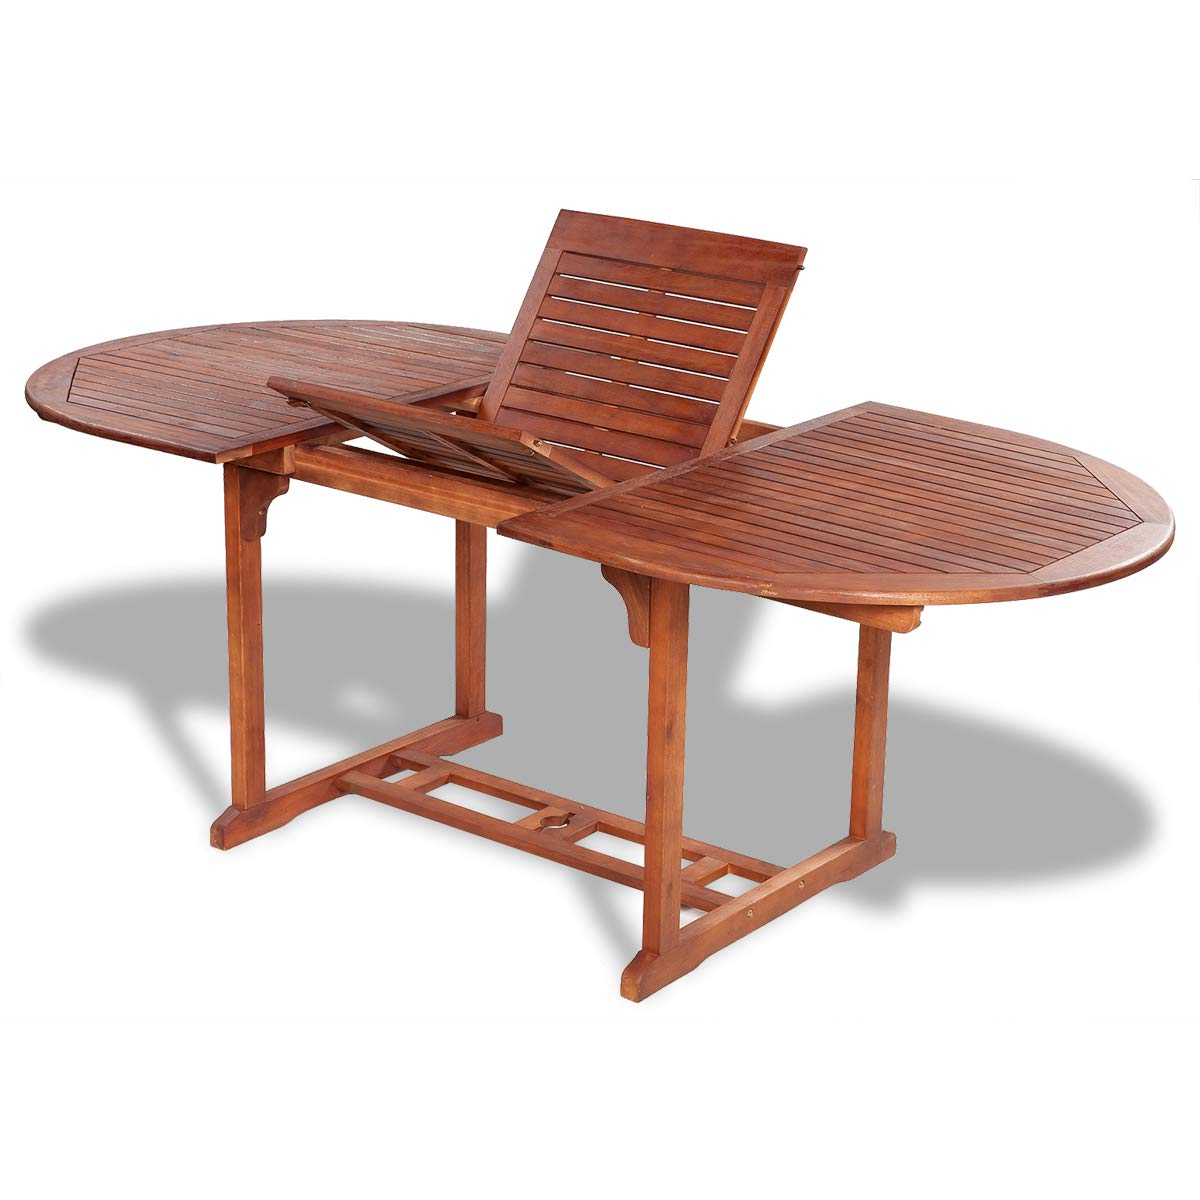 Solid Acacia Wood Dining Tables Throughout Most Up To Date Amazon: Vidaxl Solid Acacia Wood Outdoor Dining Table (View 10 of 30)